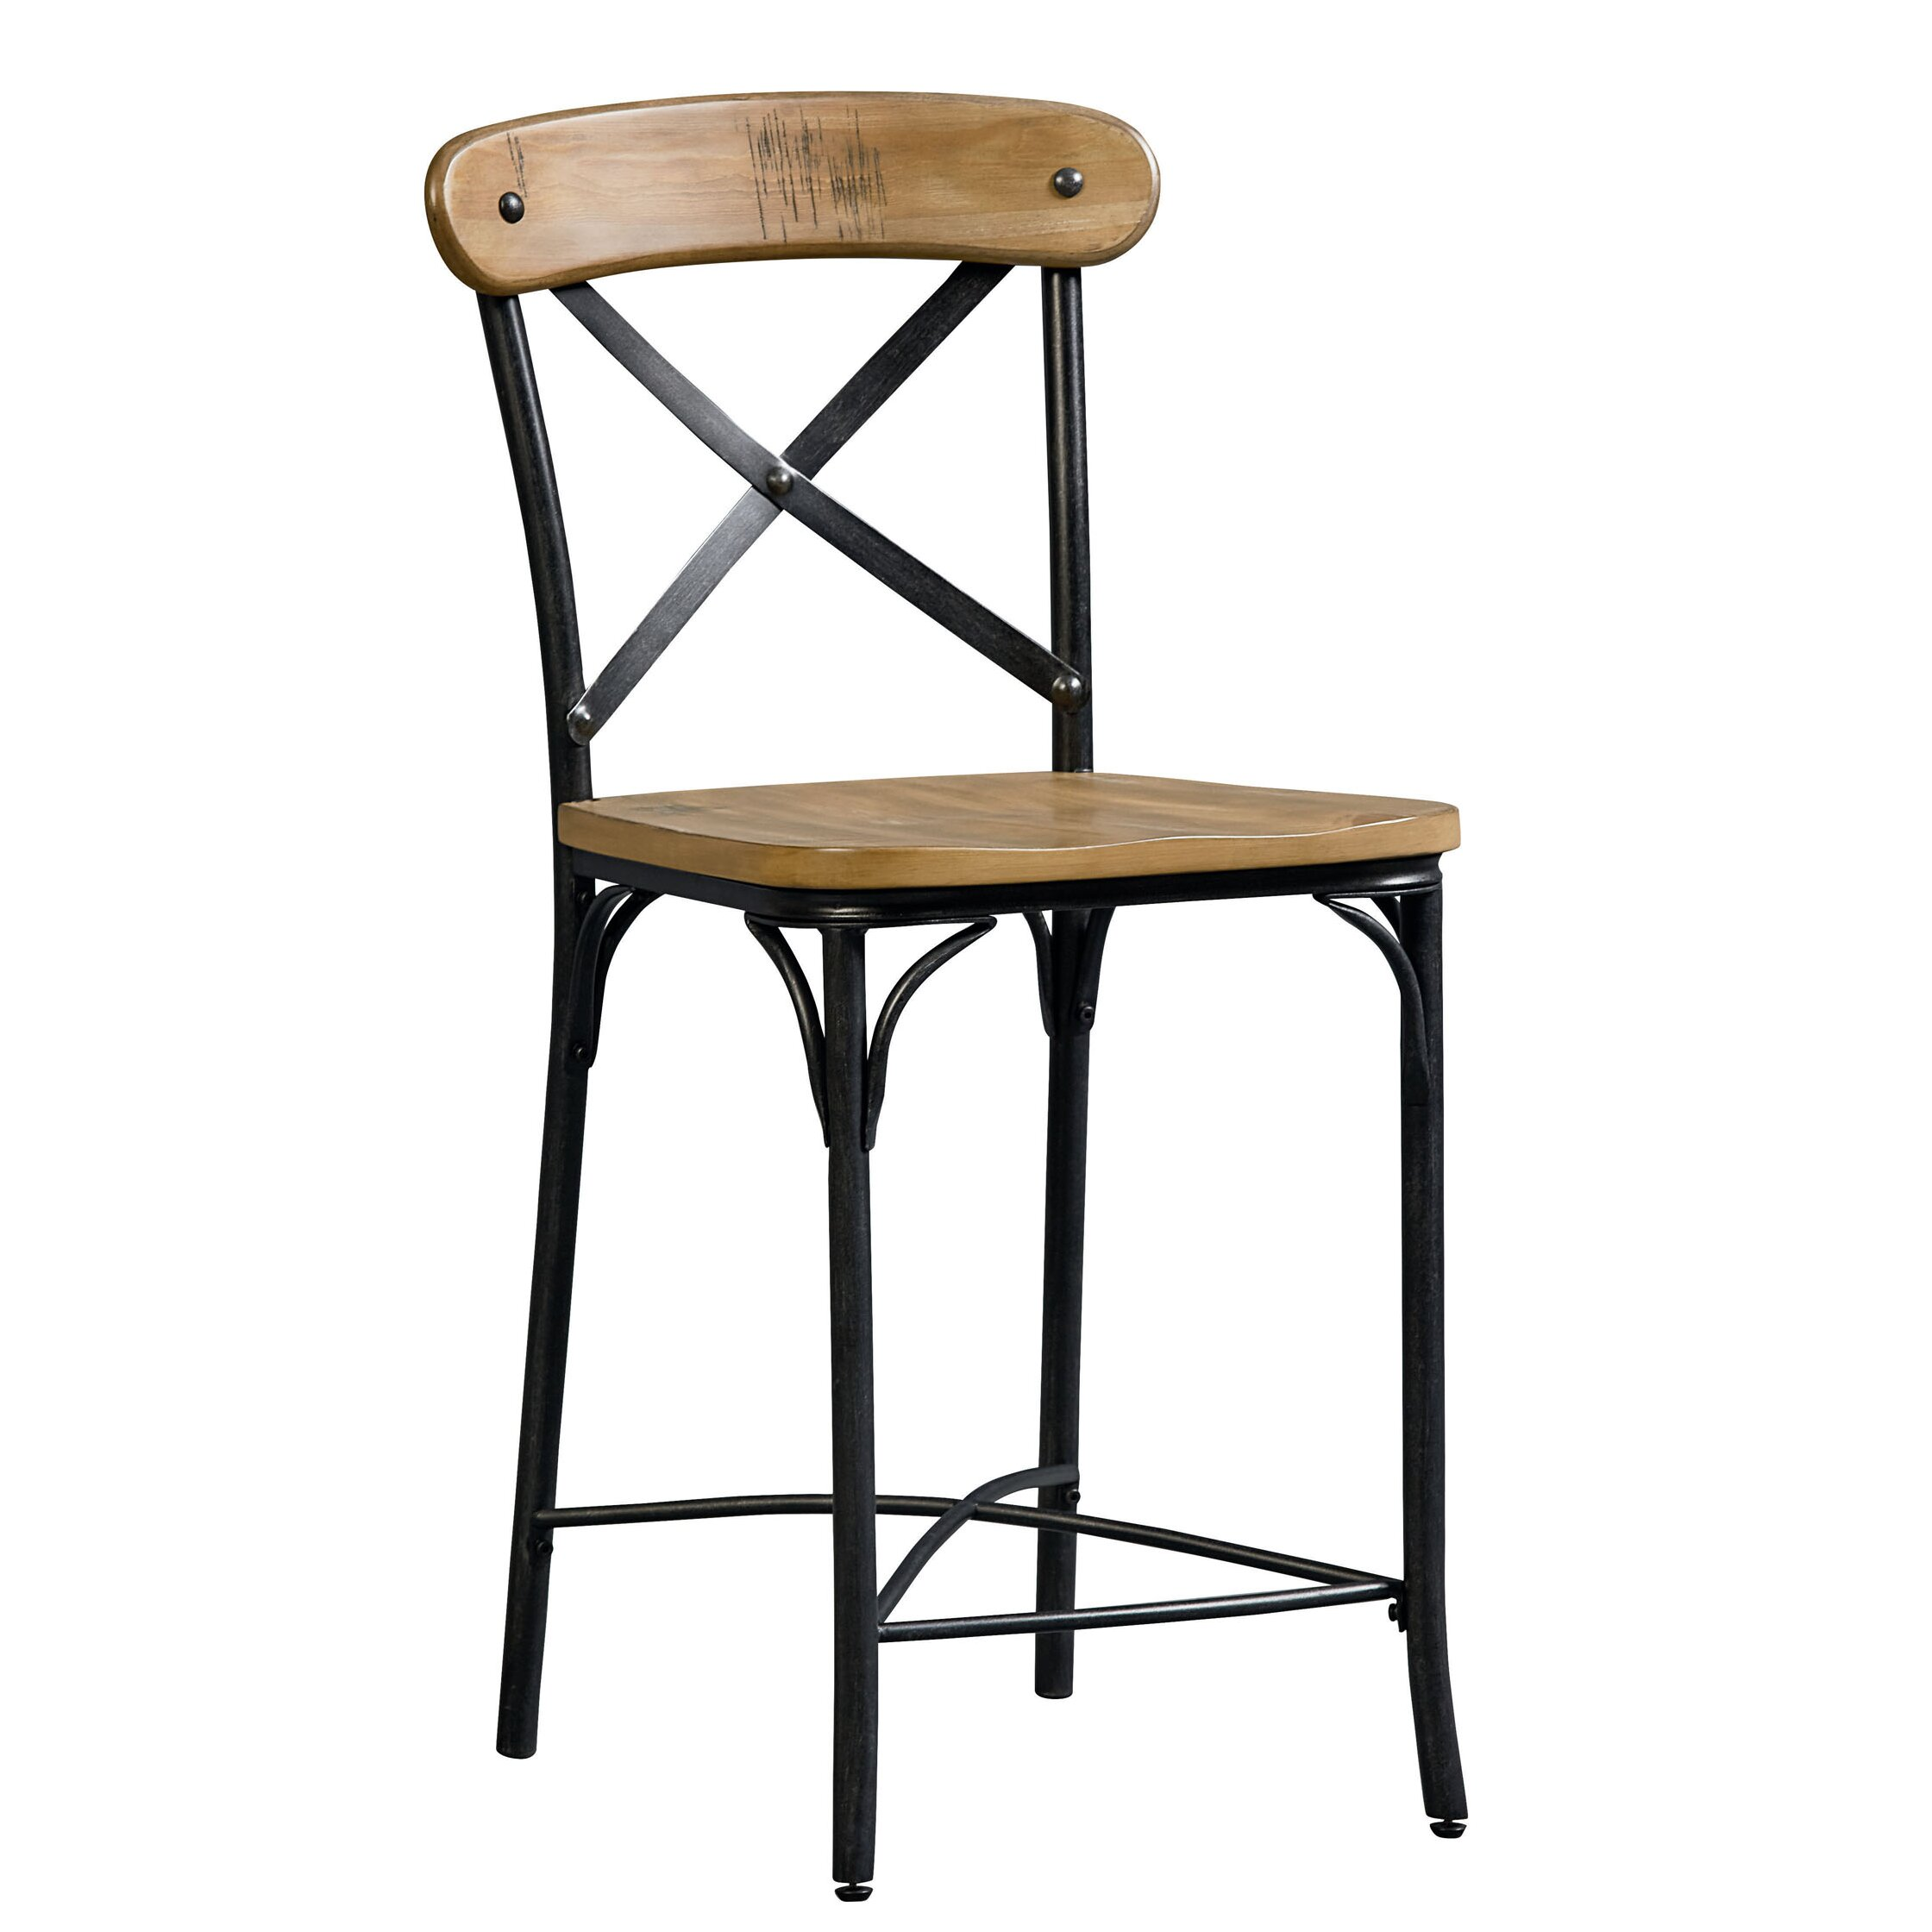 Laurel Foundry Modern Farmhouse Emile 23 75 Quot Bar Stool